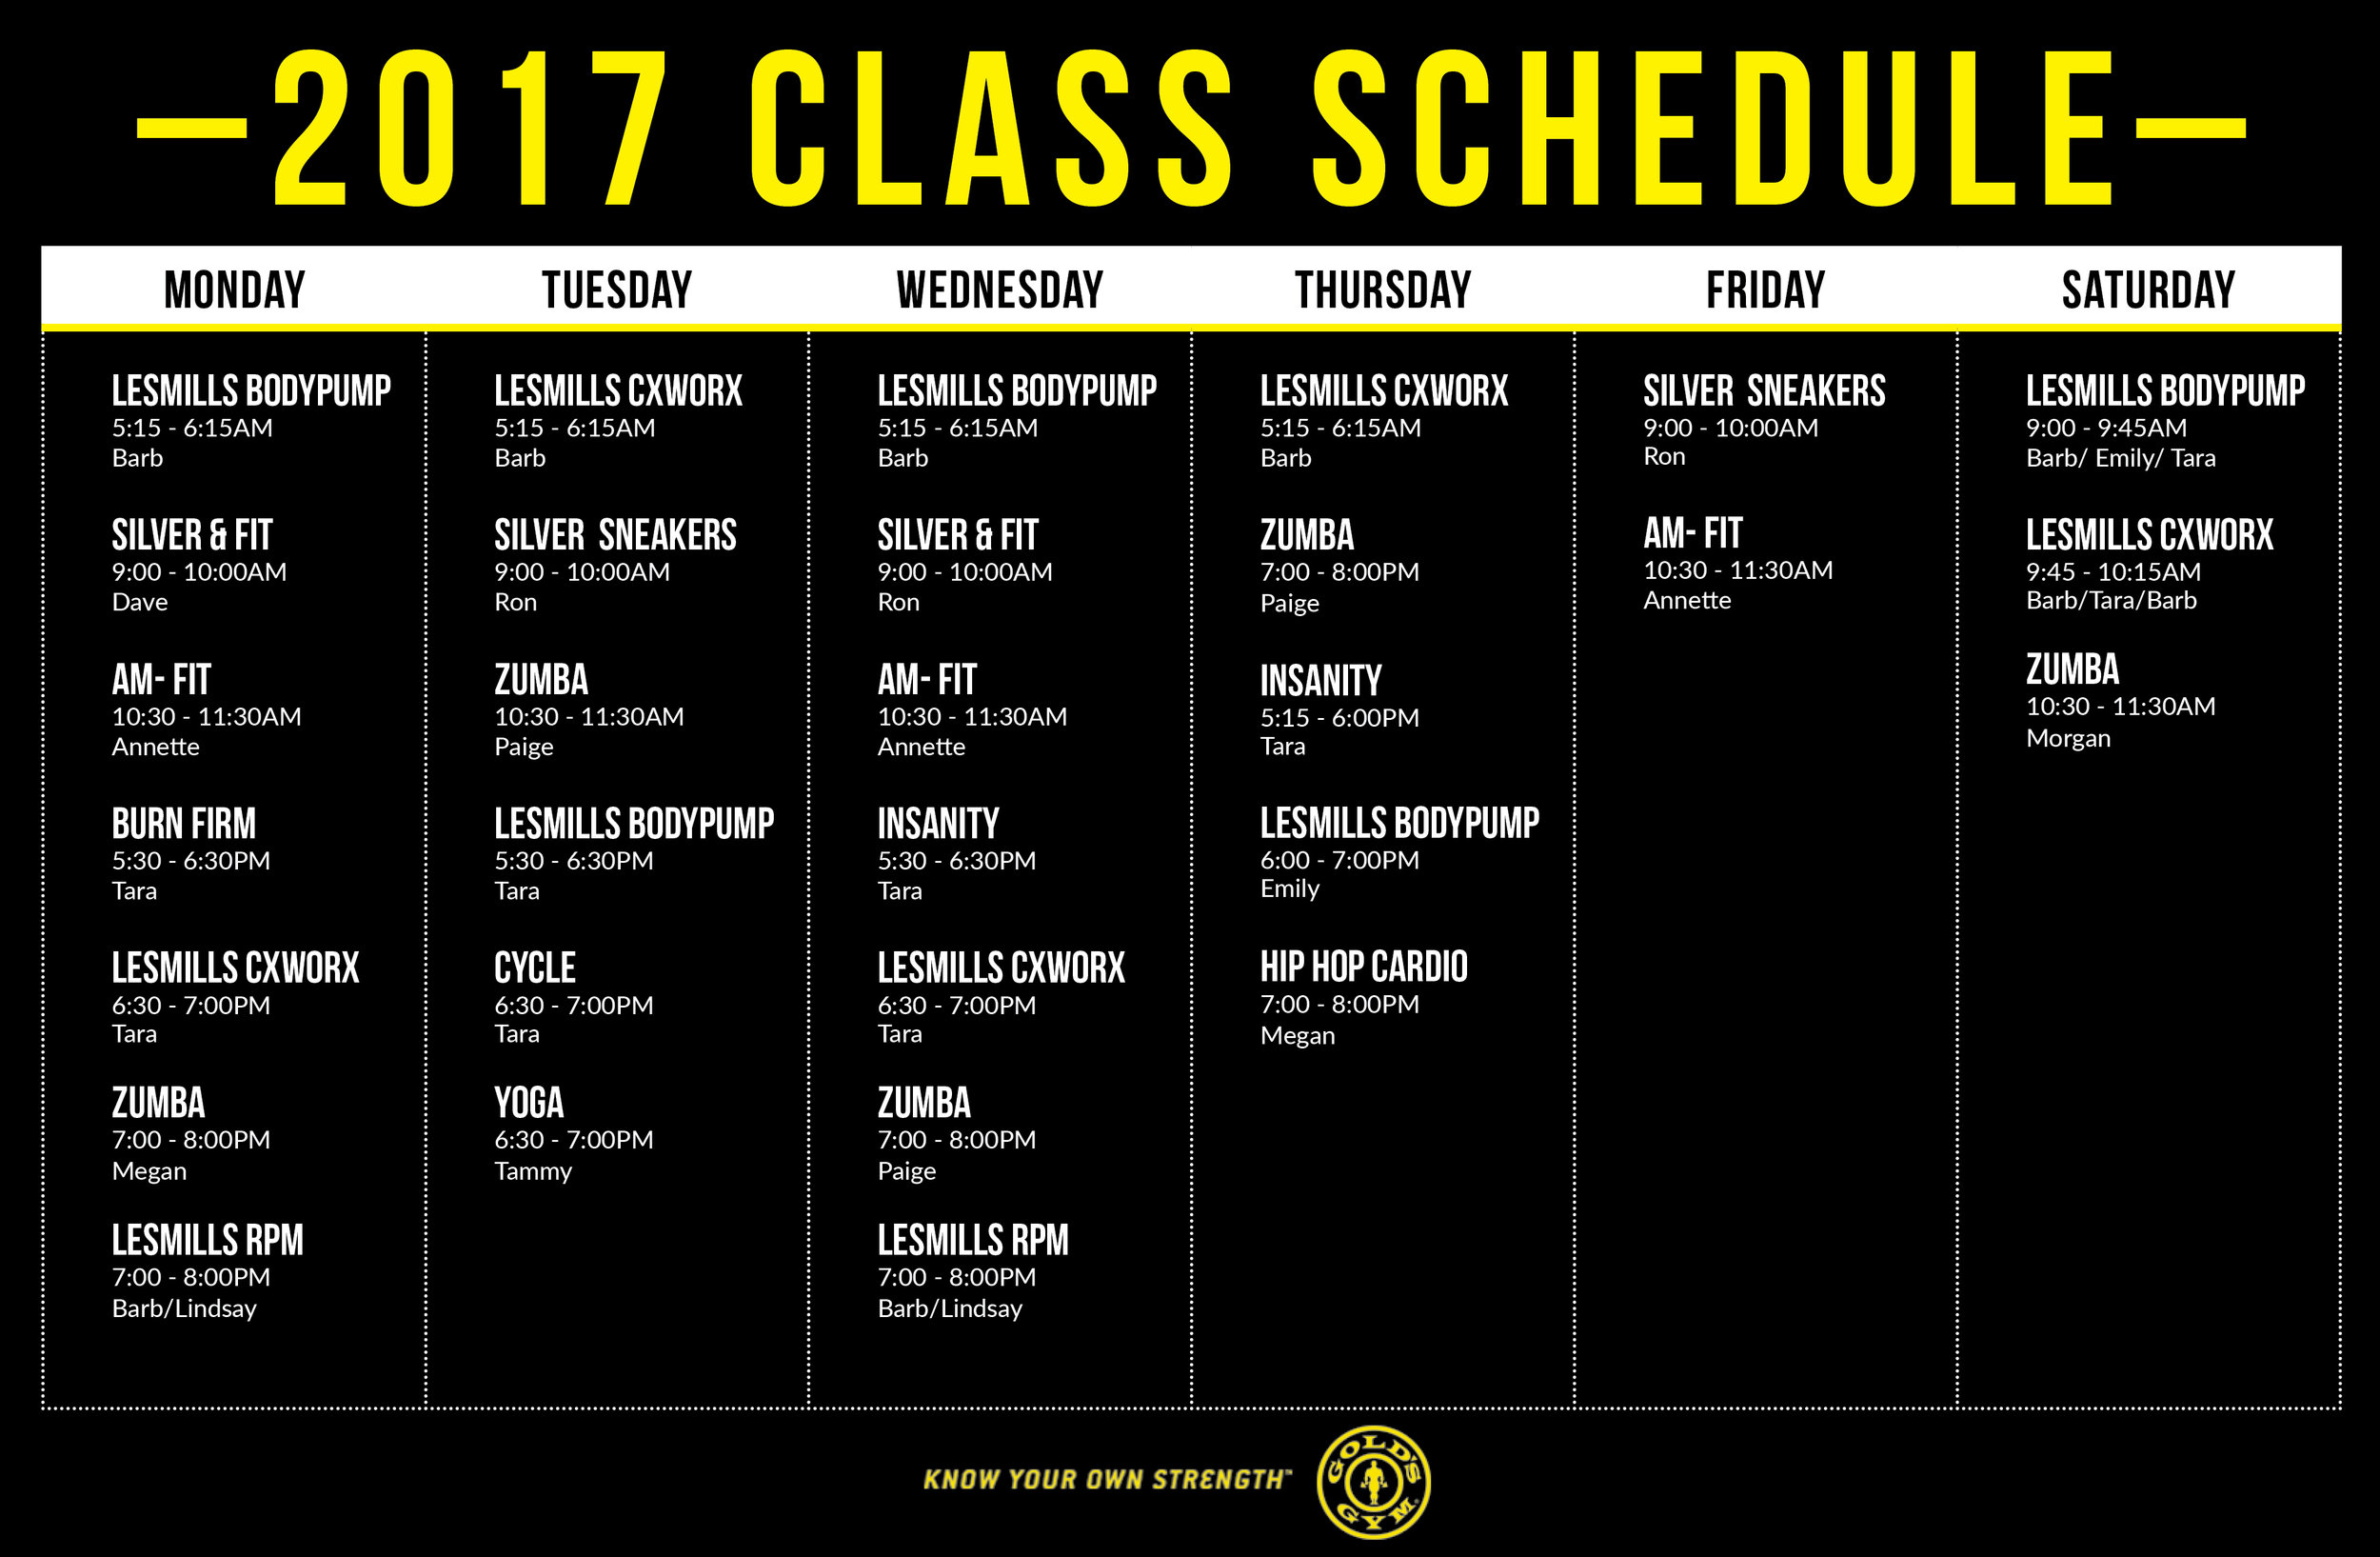 GoldsGymSchedule.jpg